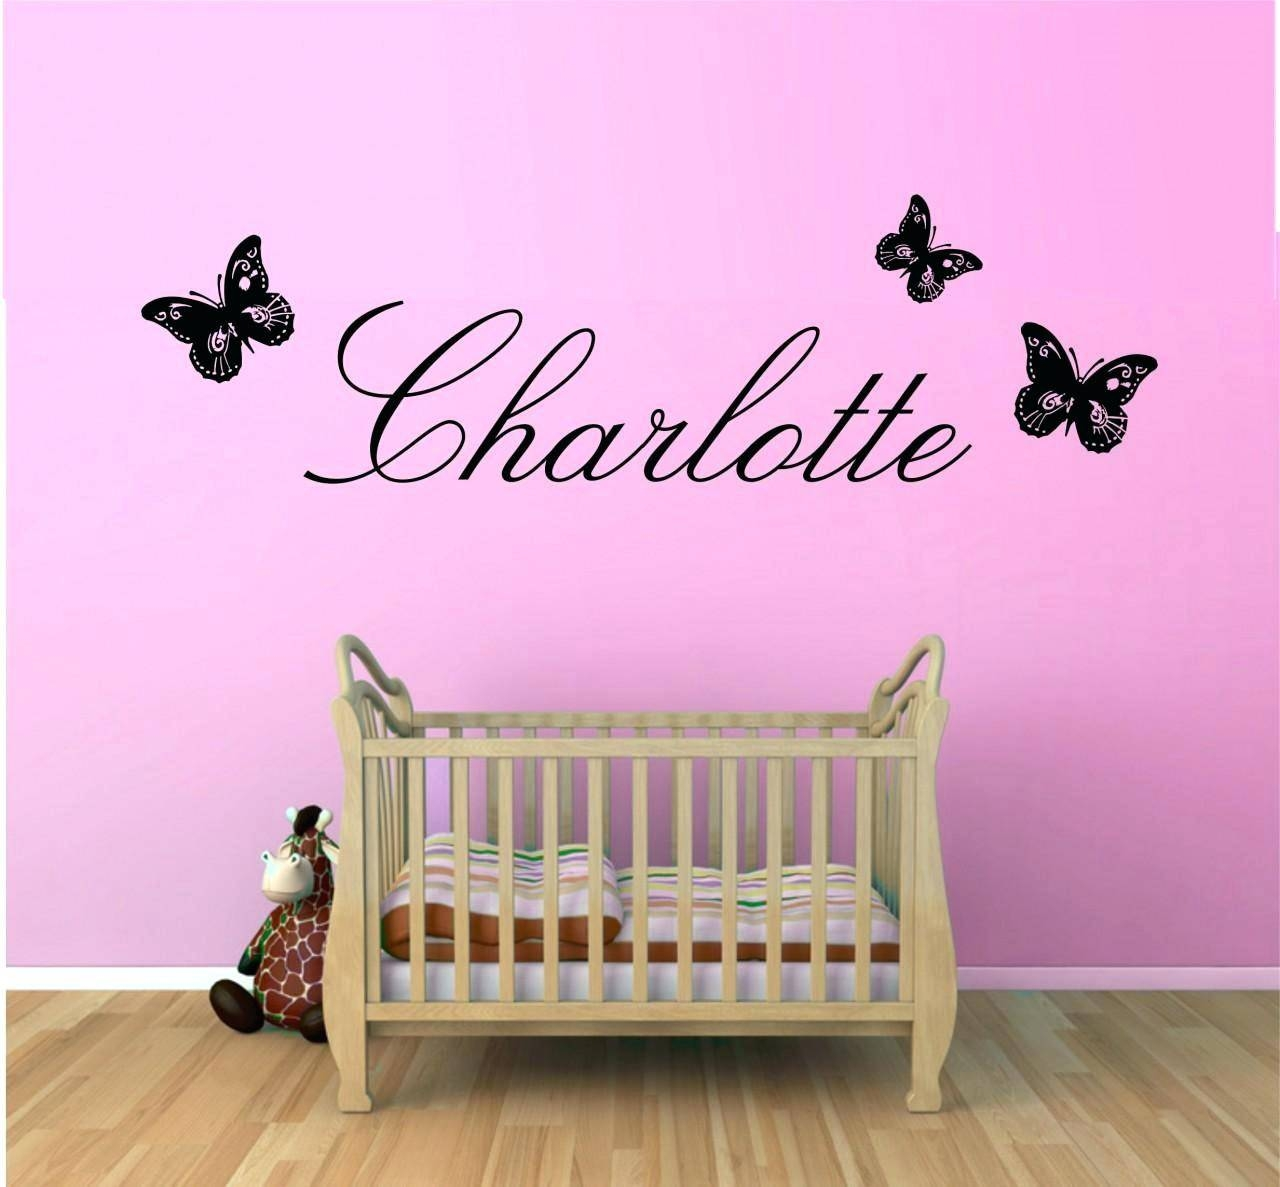 Butterfly Wall Stickers Ebay Uk – Gutesleben With Regard To Most Popular Butterflies Wall Art Stickers (View 12 of 20)